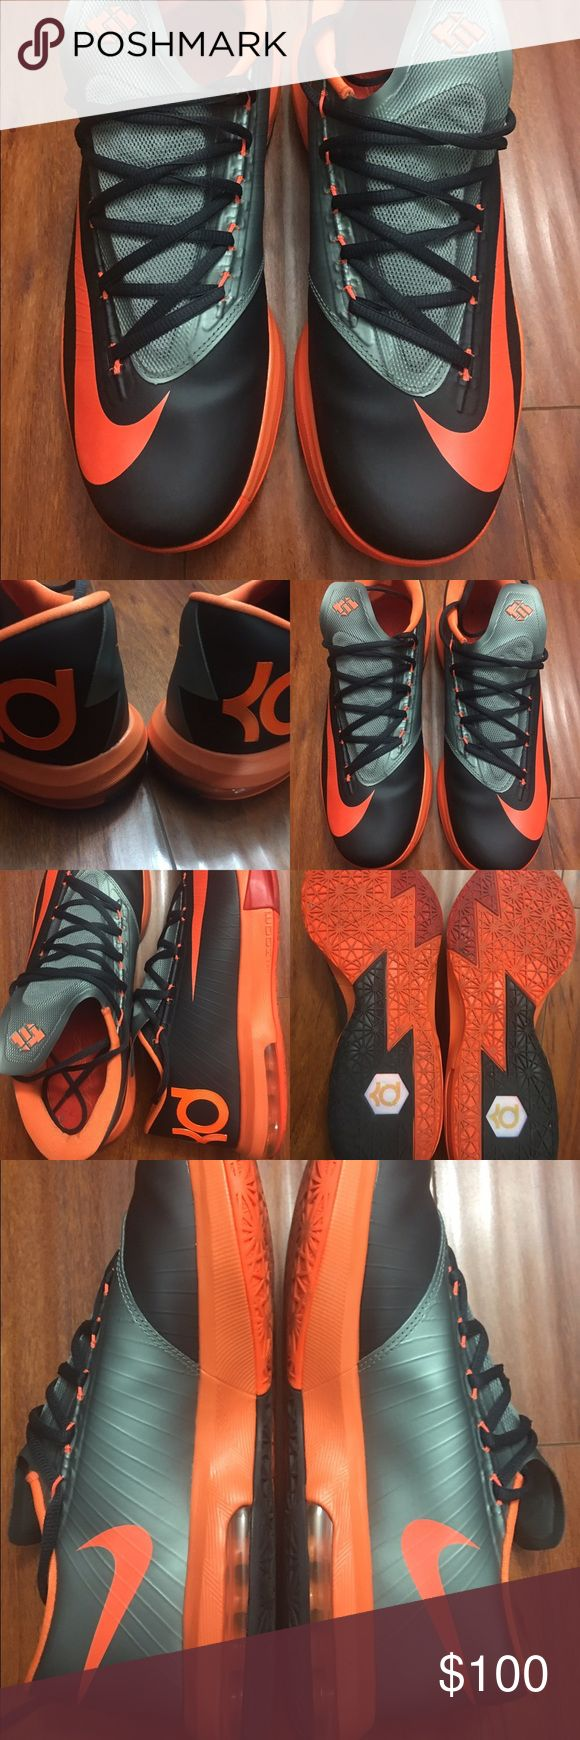 """NIKE KD VI """"Neutral"""" NIKE KD VI """"Neutral"""" Excellent Condition. Only worn twice (never for basketball) always in the box. Nike Shoes Athletic Shoes"""